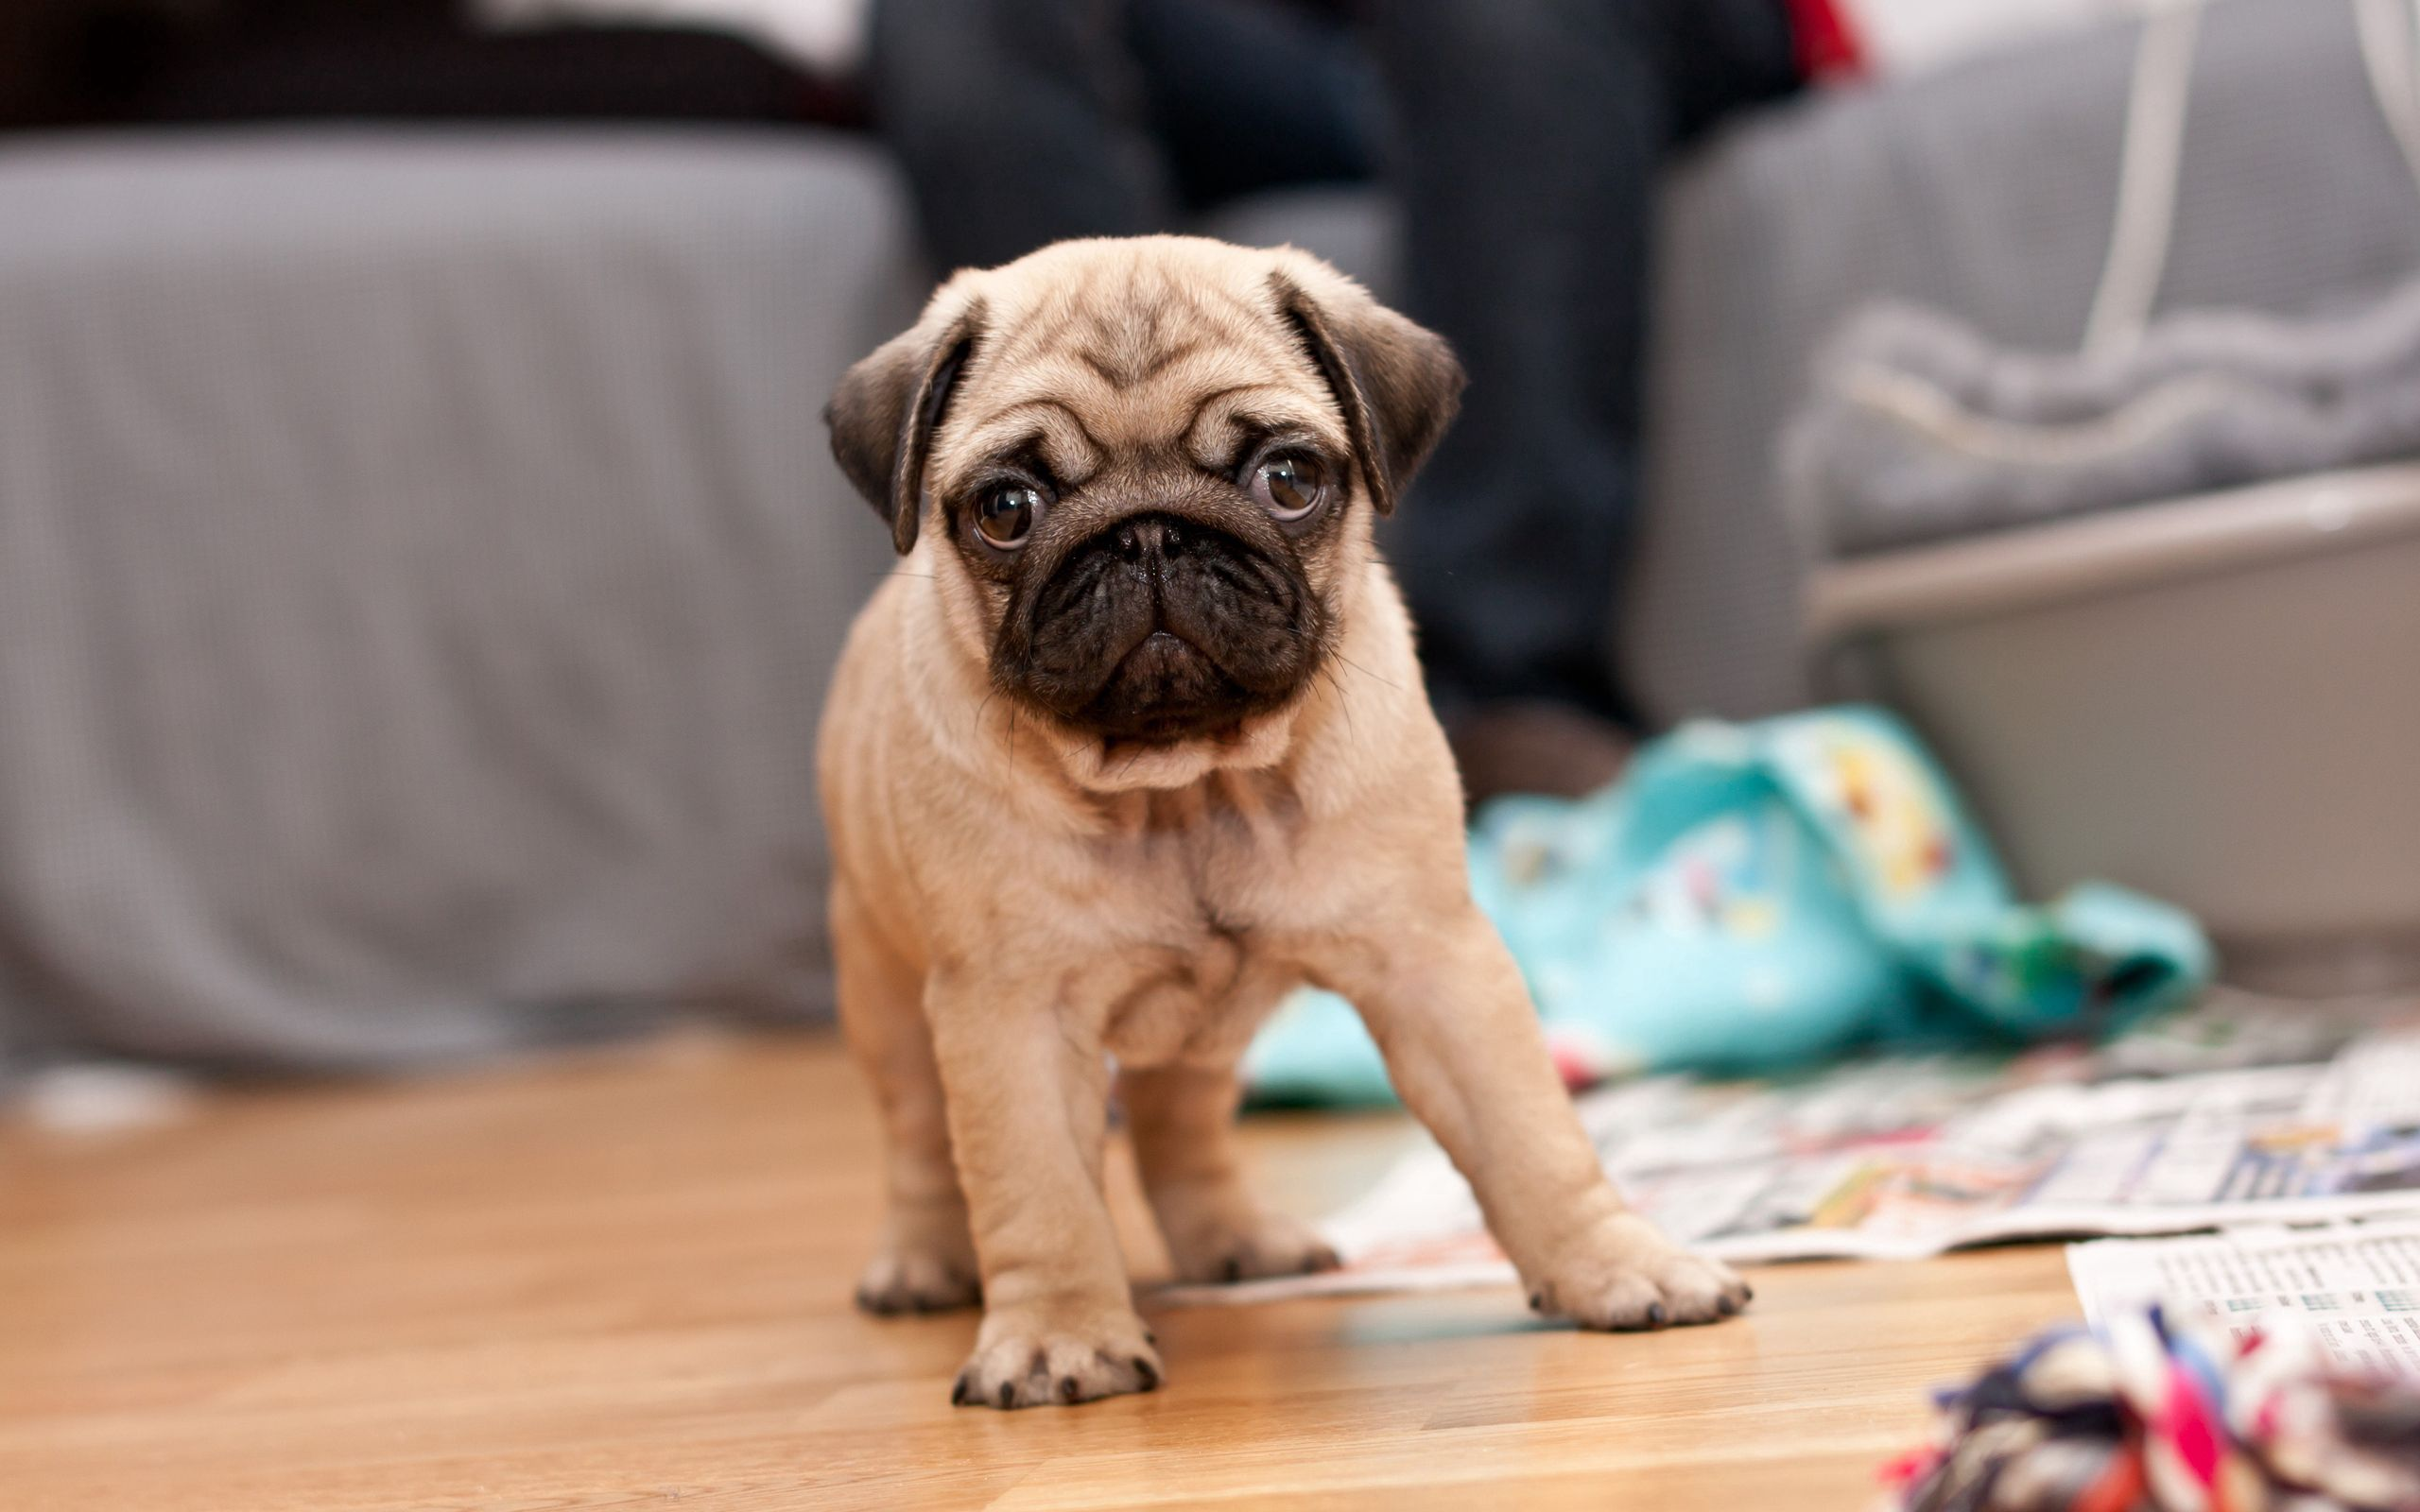 73248 download wallpaper Animals, Puppy, Muzzle, To Stand, Stand, Expectation, Waiting, Dog screensavers and pictures for free